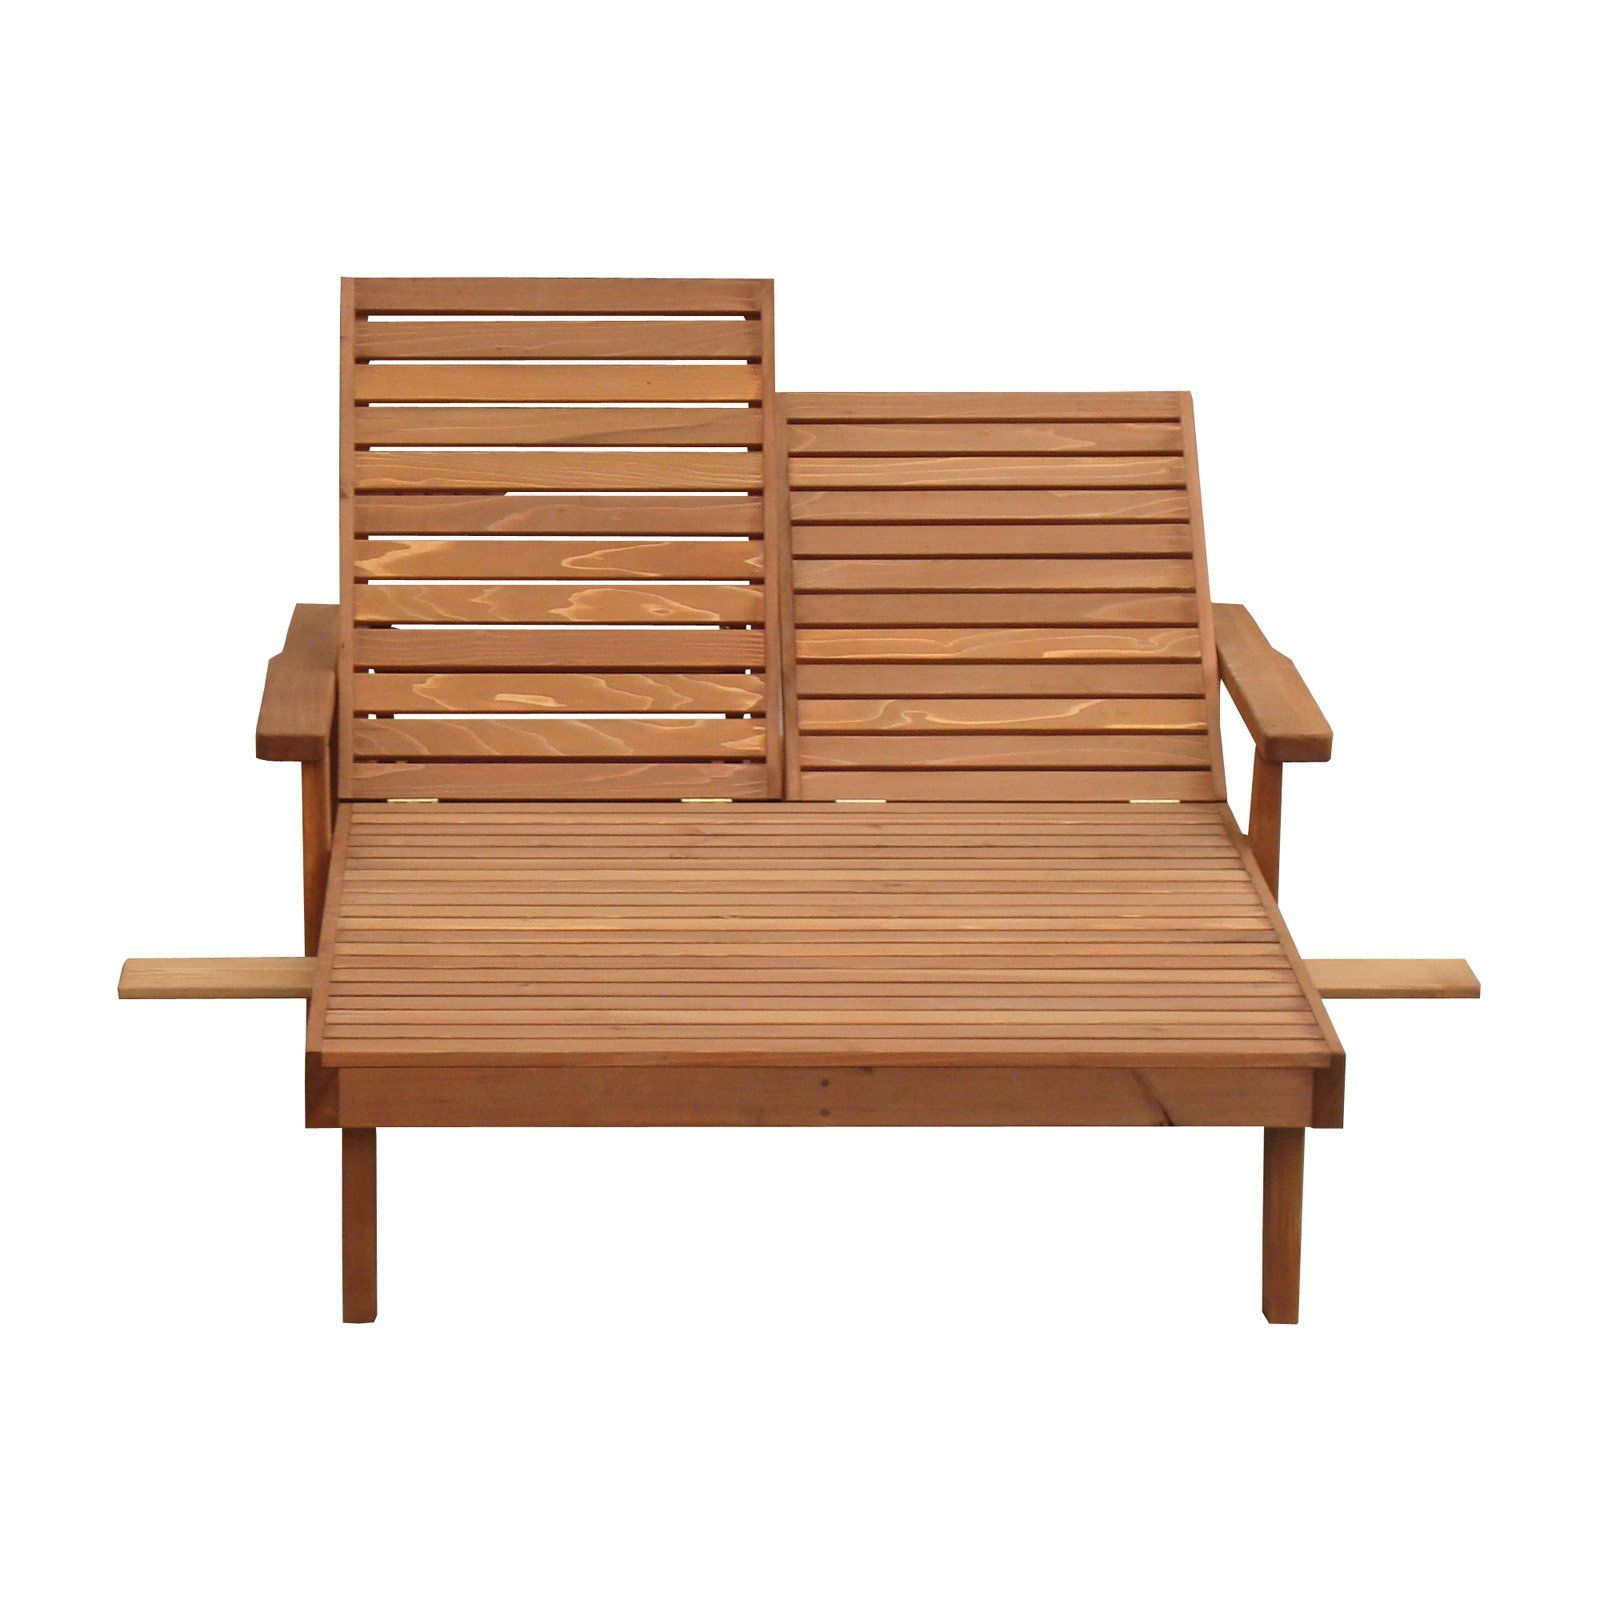 Free Shipping. Buy Best Redwood Double Summer Chaise